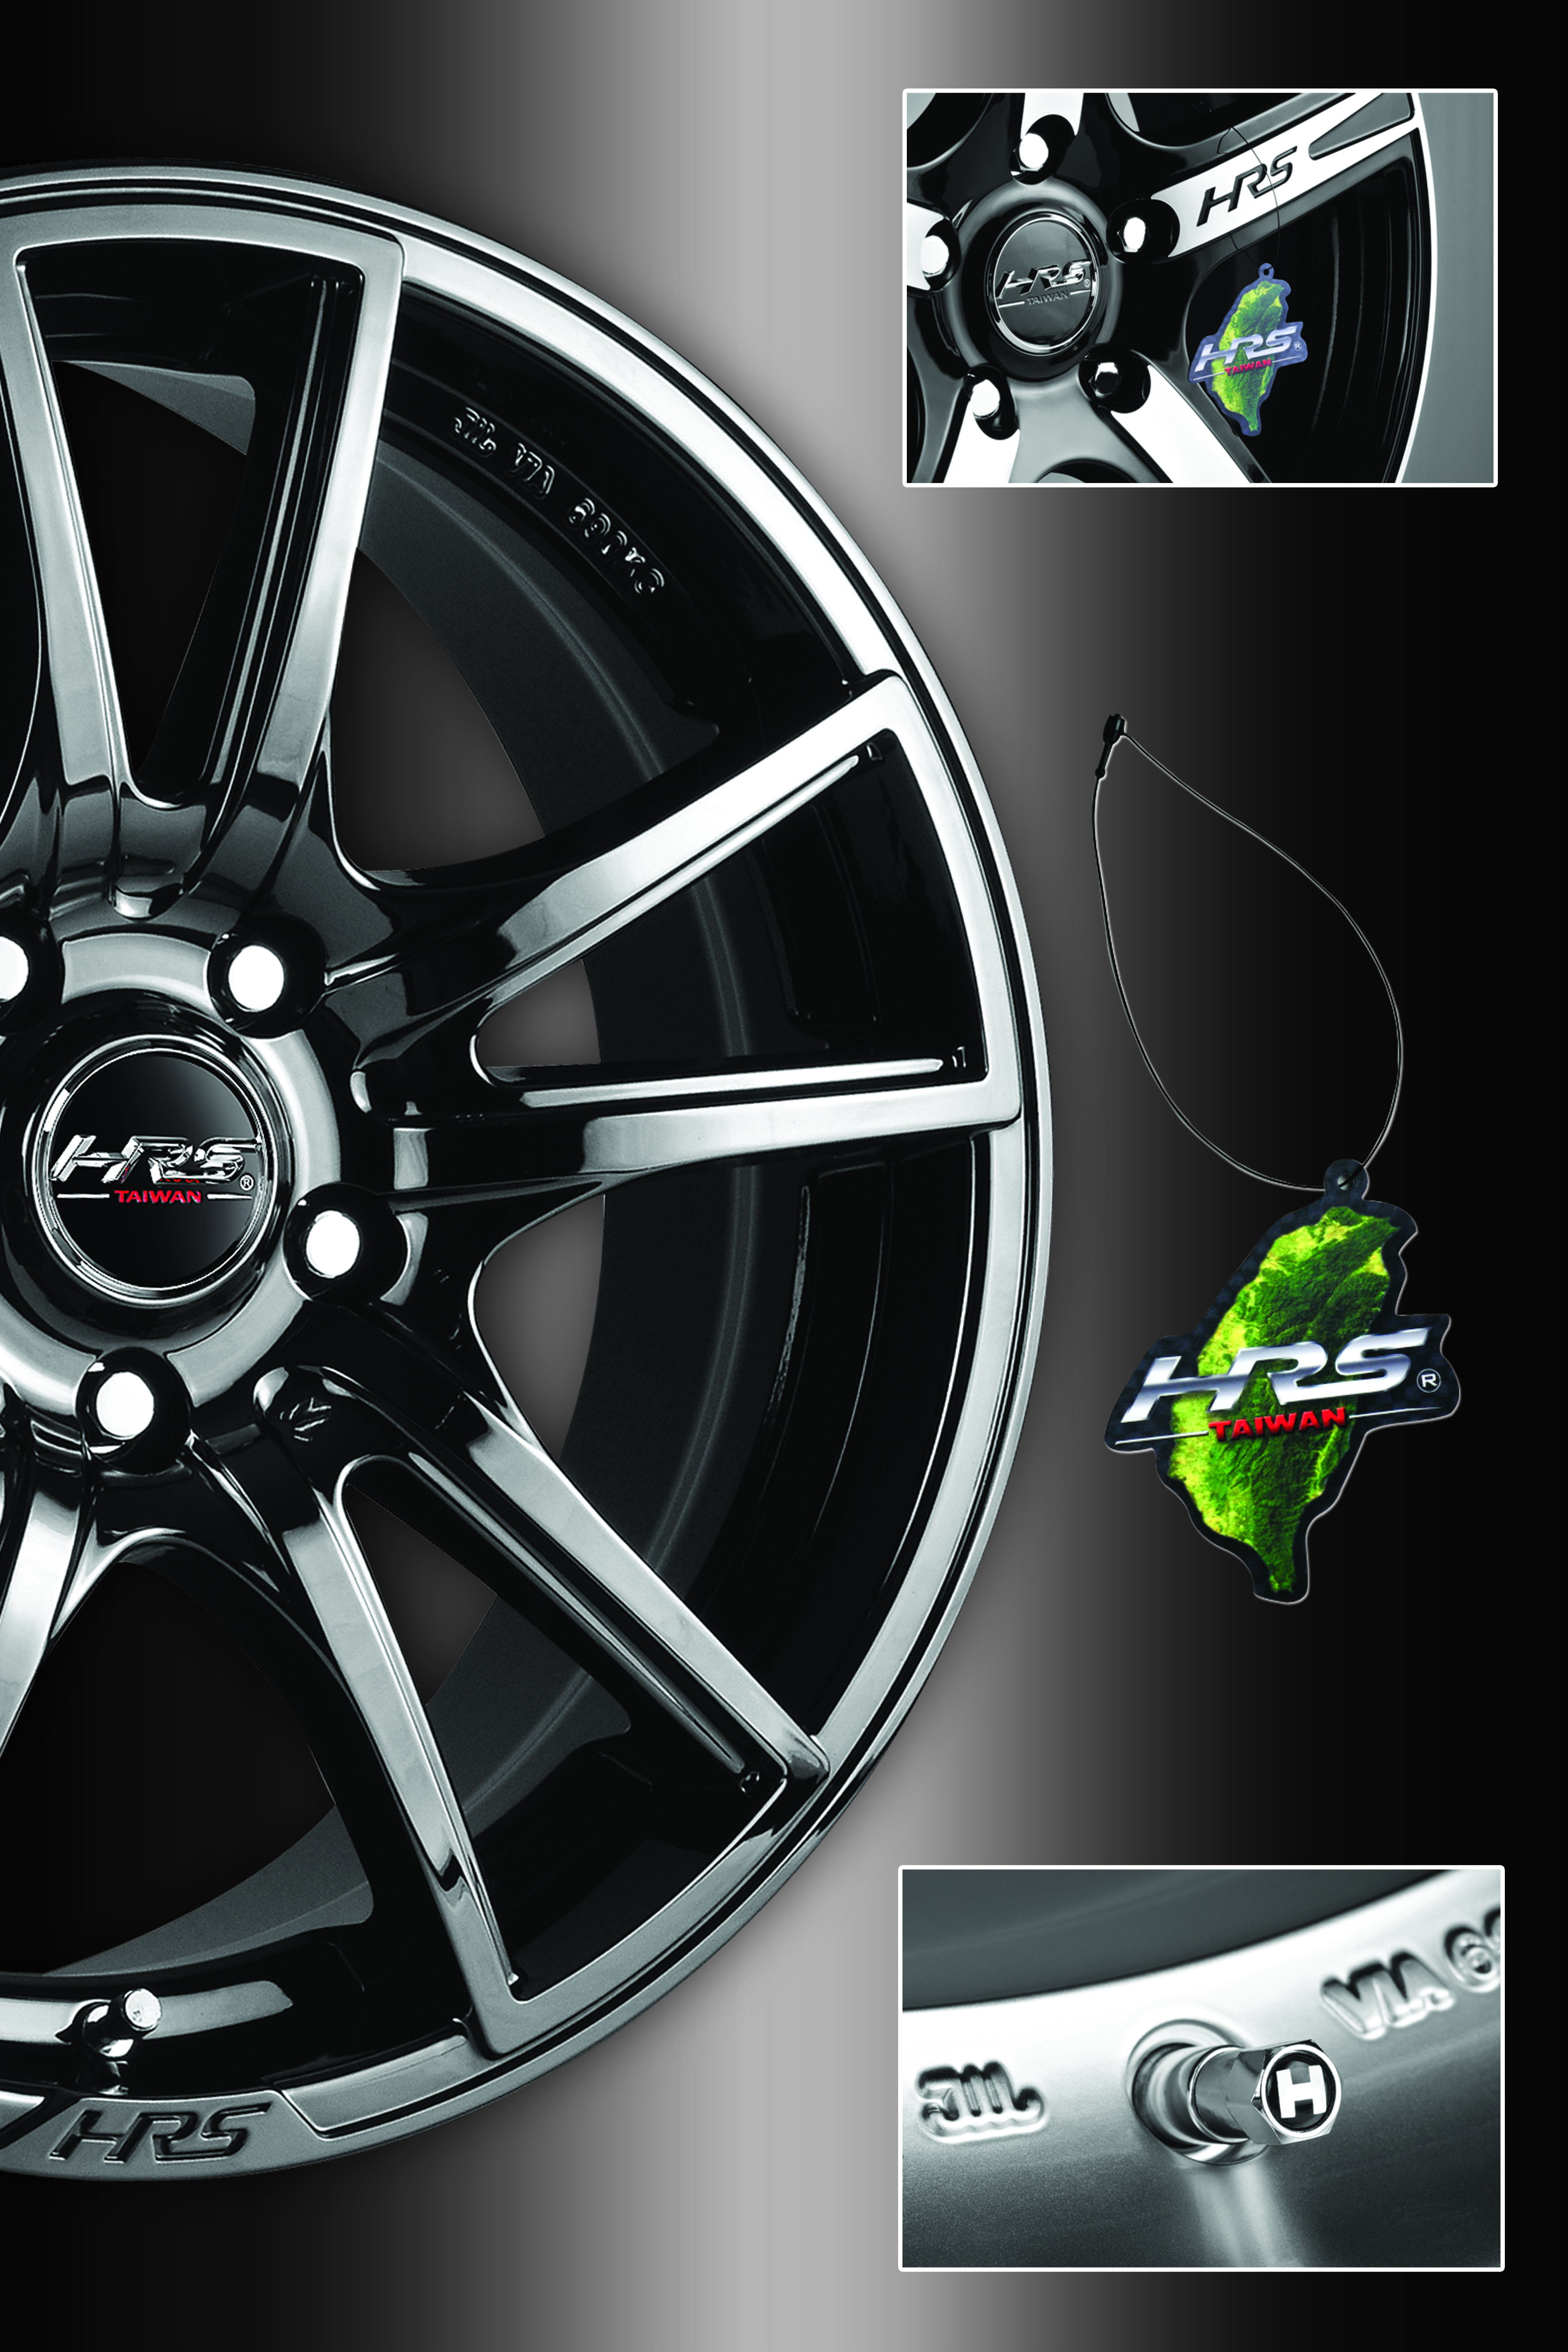 How to check for genuine HRS alloy wheels ?